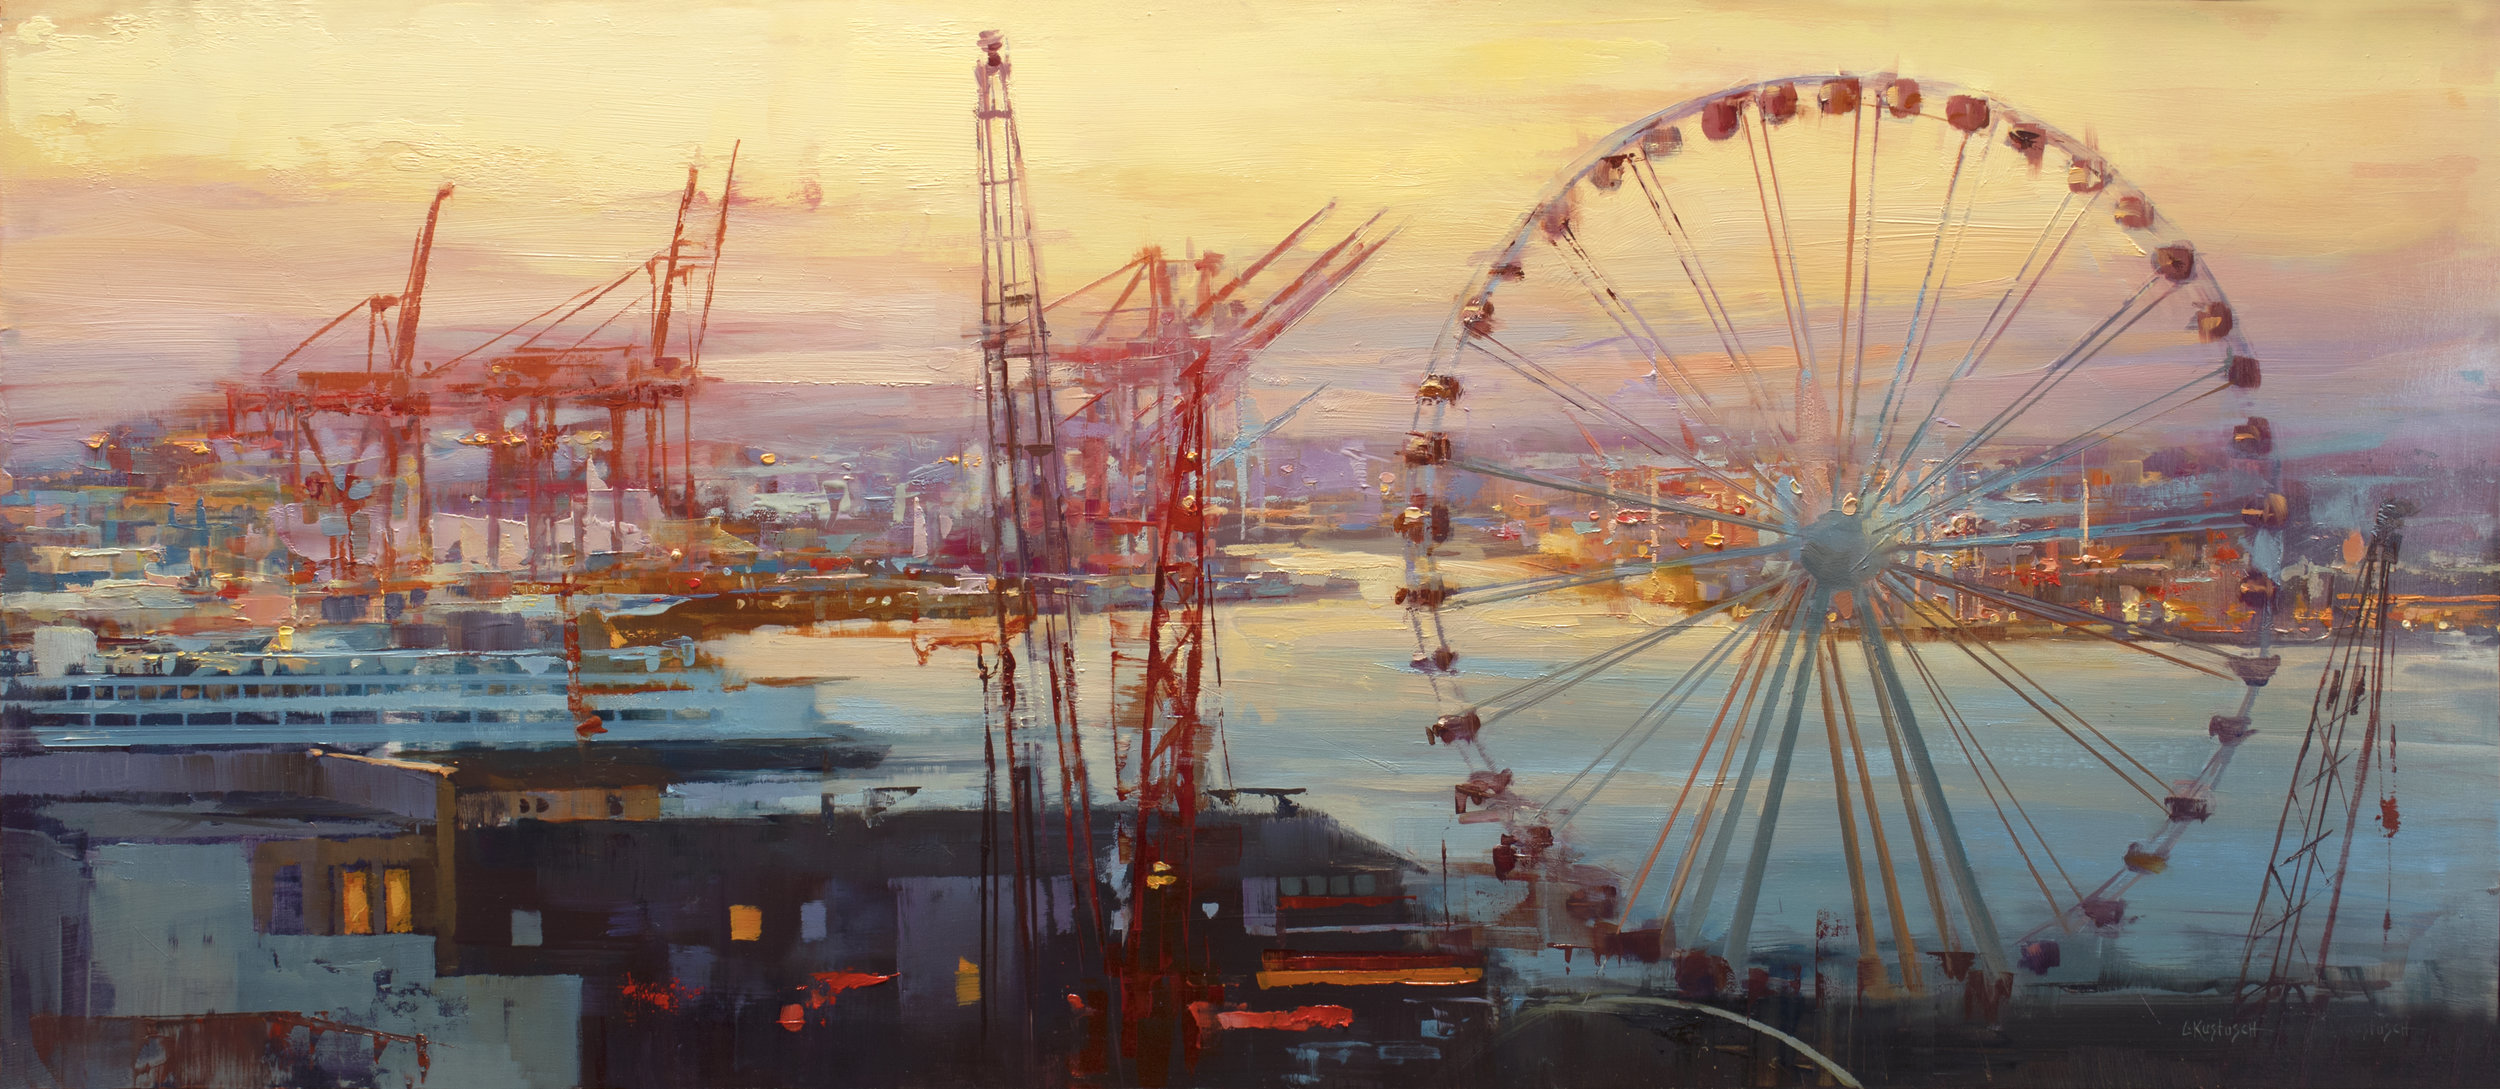 Lindsey Kustusch_%22Pike's Place at Dawn%22_14x32_oil on panel_$4,100.jpg